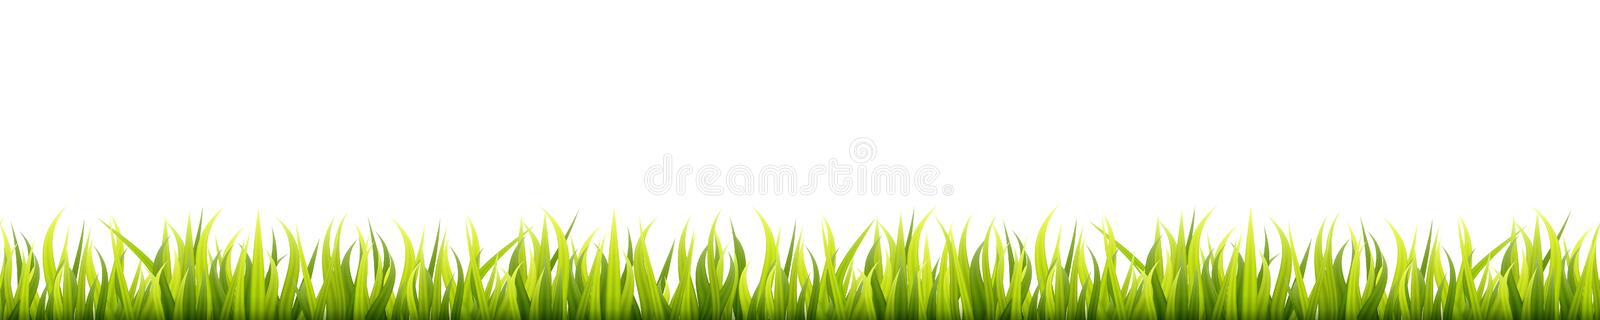 Seamless summer grass panorama. Green springtime herbal lawn. Field or meadow horizontal decoration lines royalty free illustration